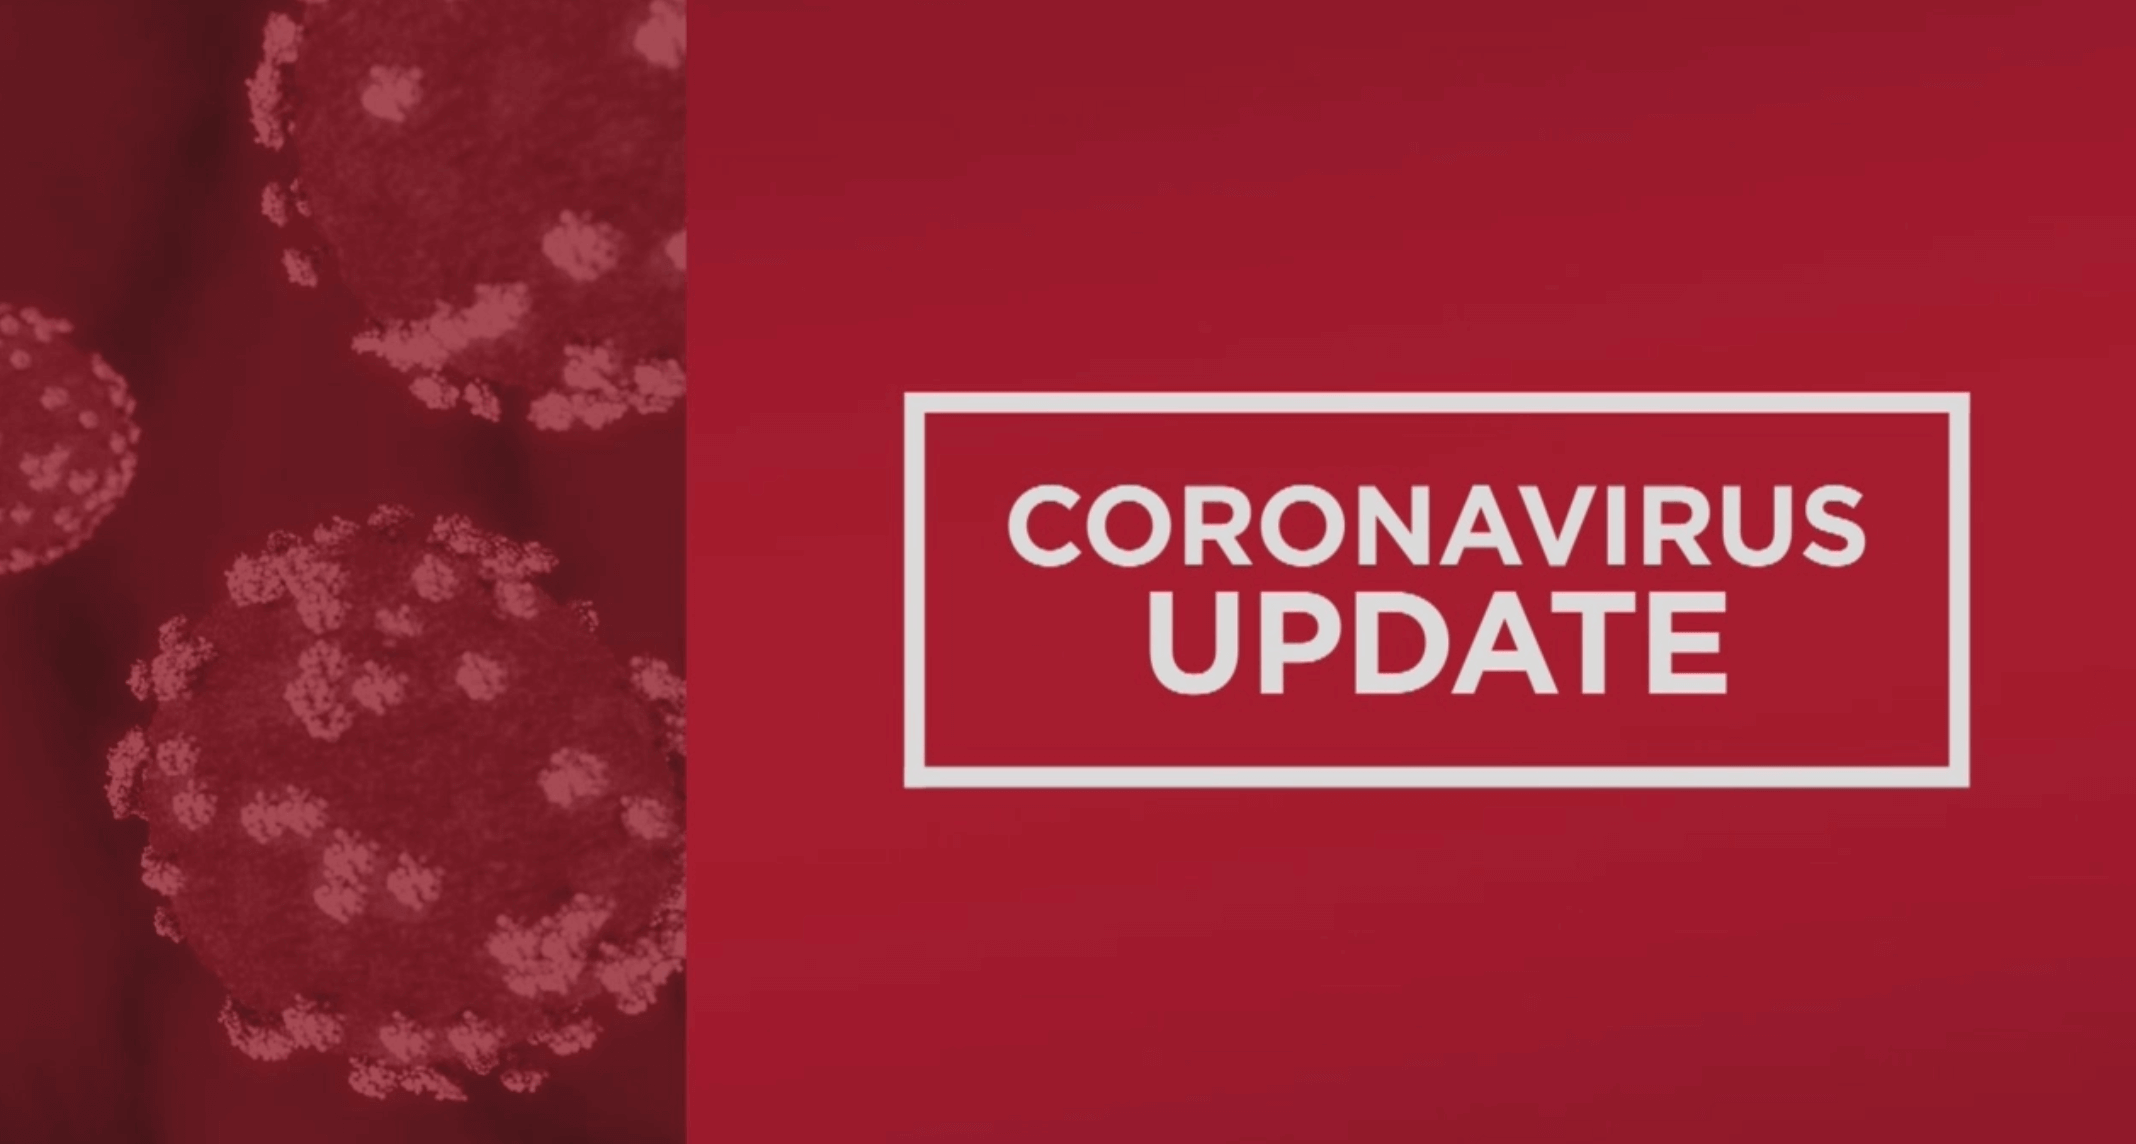 Los Angeles County Announces Seven New Deaths Related to 2019 Novel Coronavirus (COVID-19) - 342 New Cases of Confirmed COVID-19 in Los Angeles County